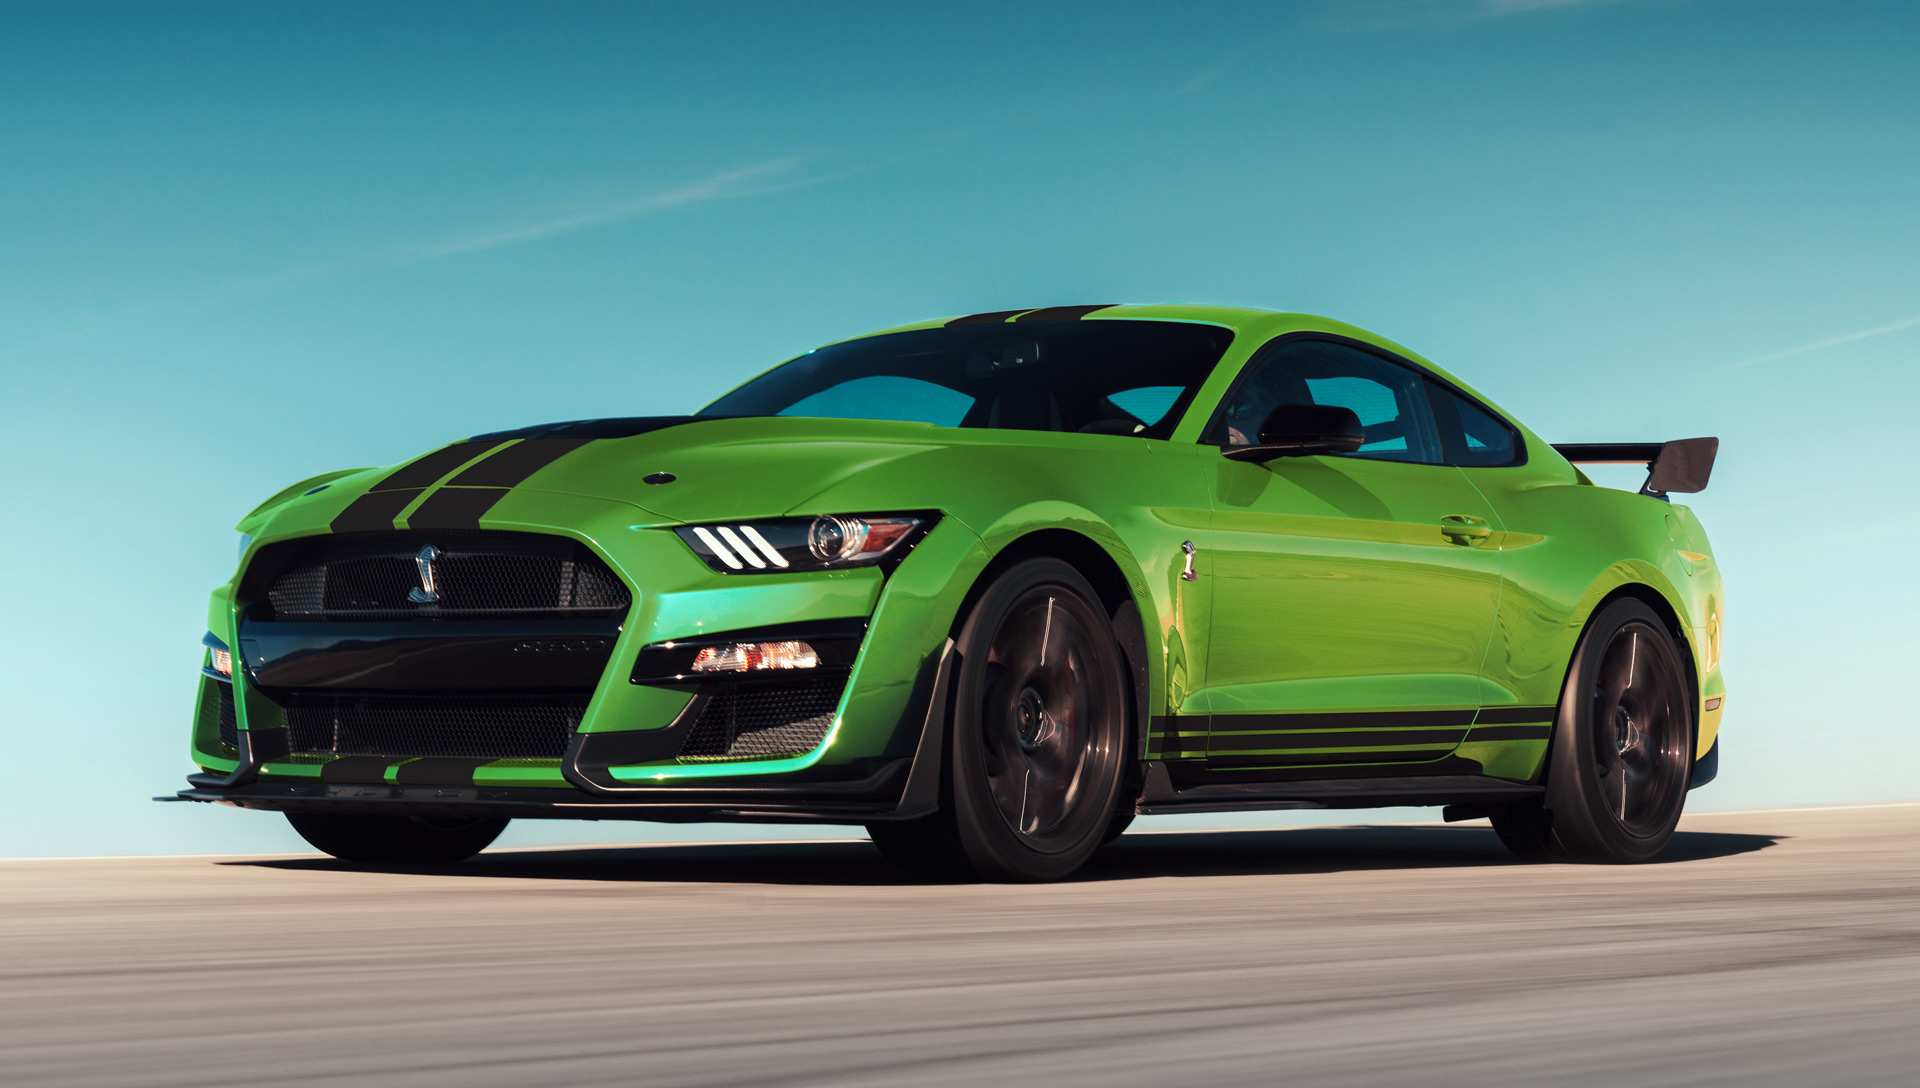 73 The 2020 Ford Mustang Shelby Gt500 New Concept